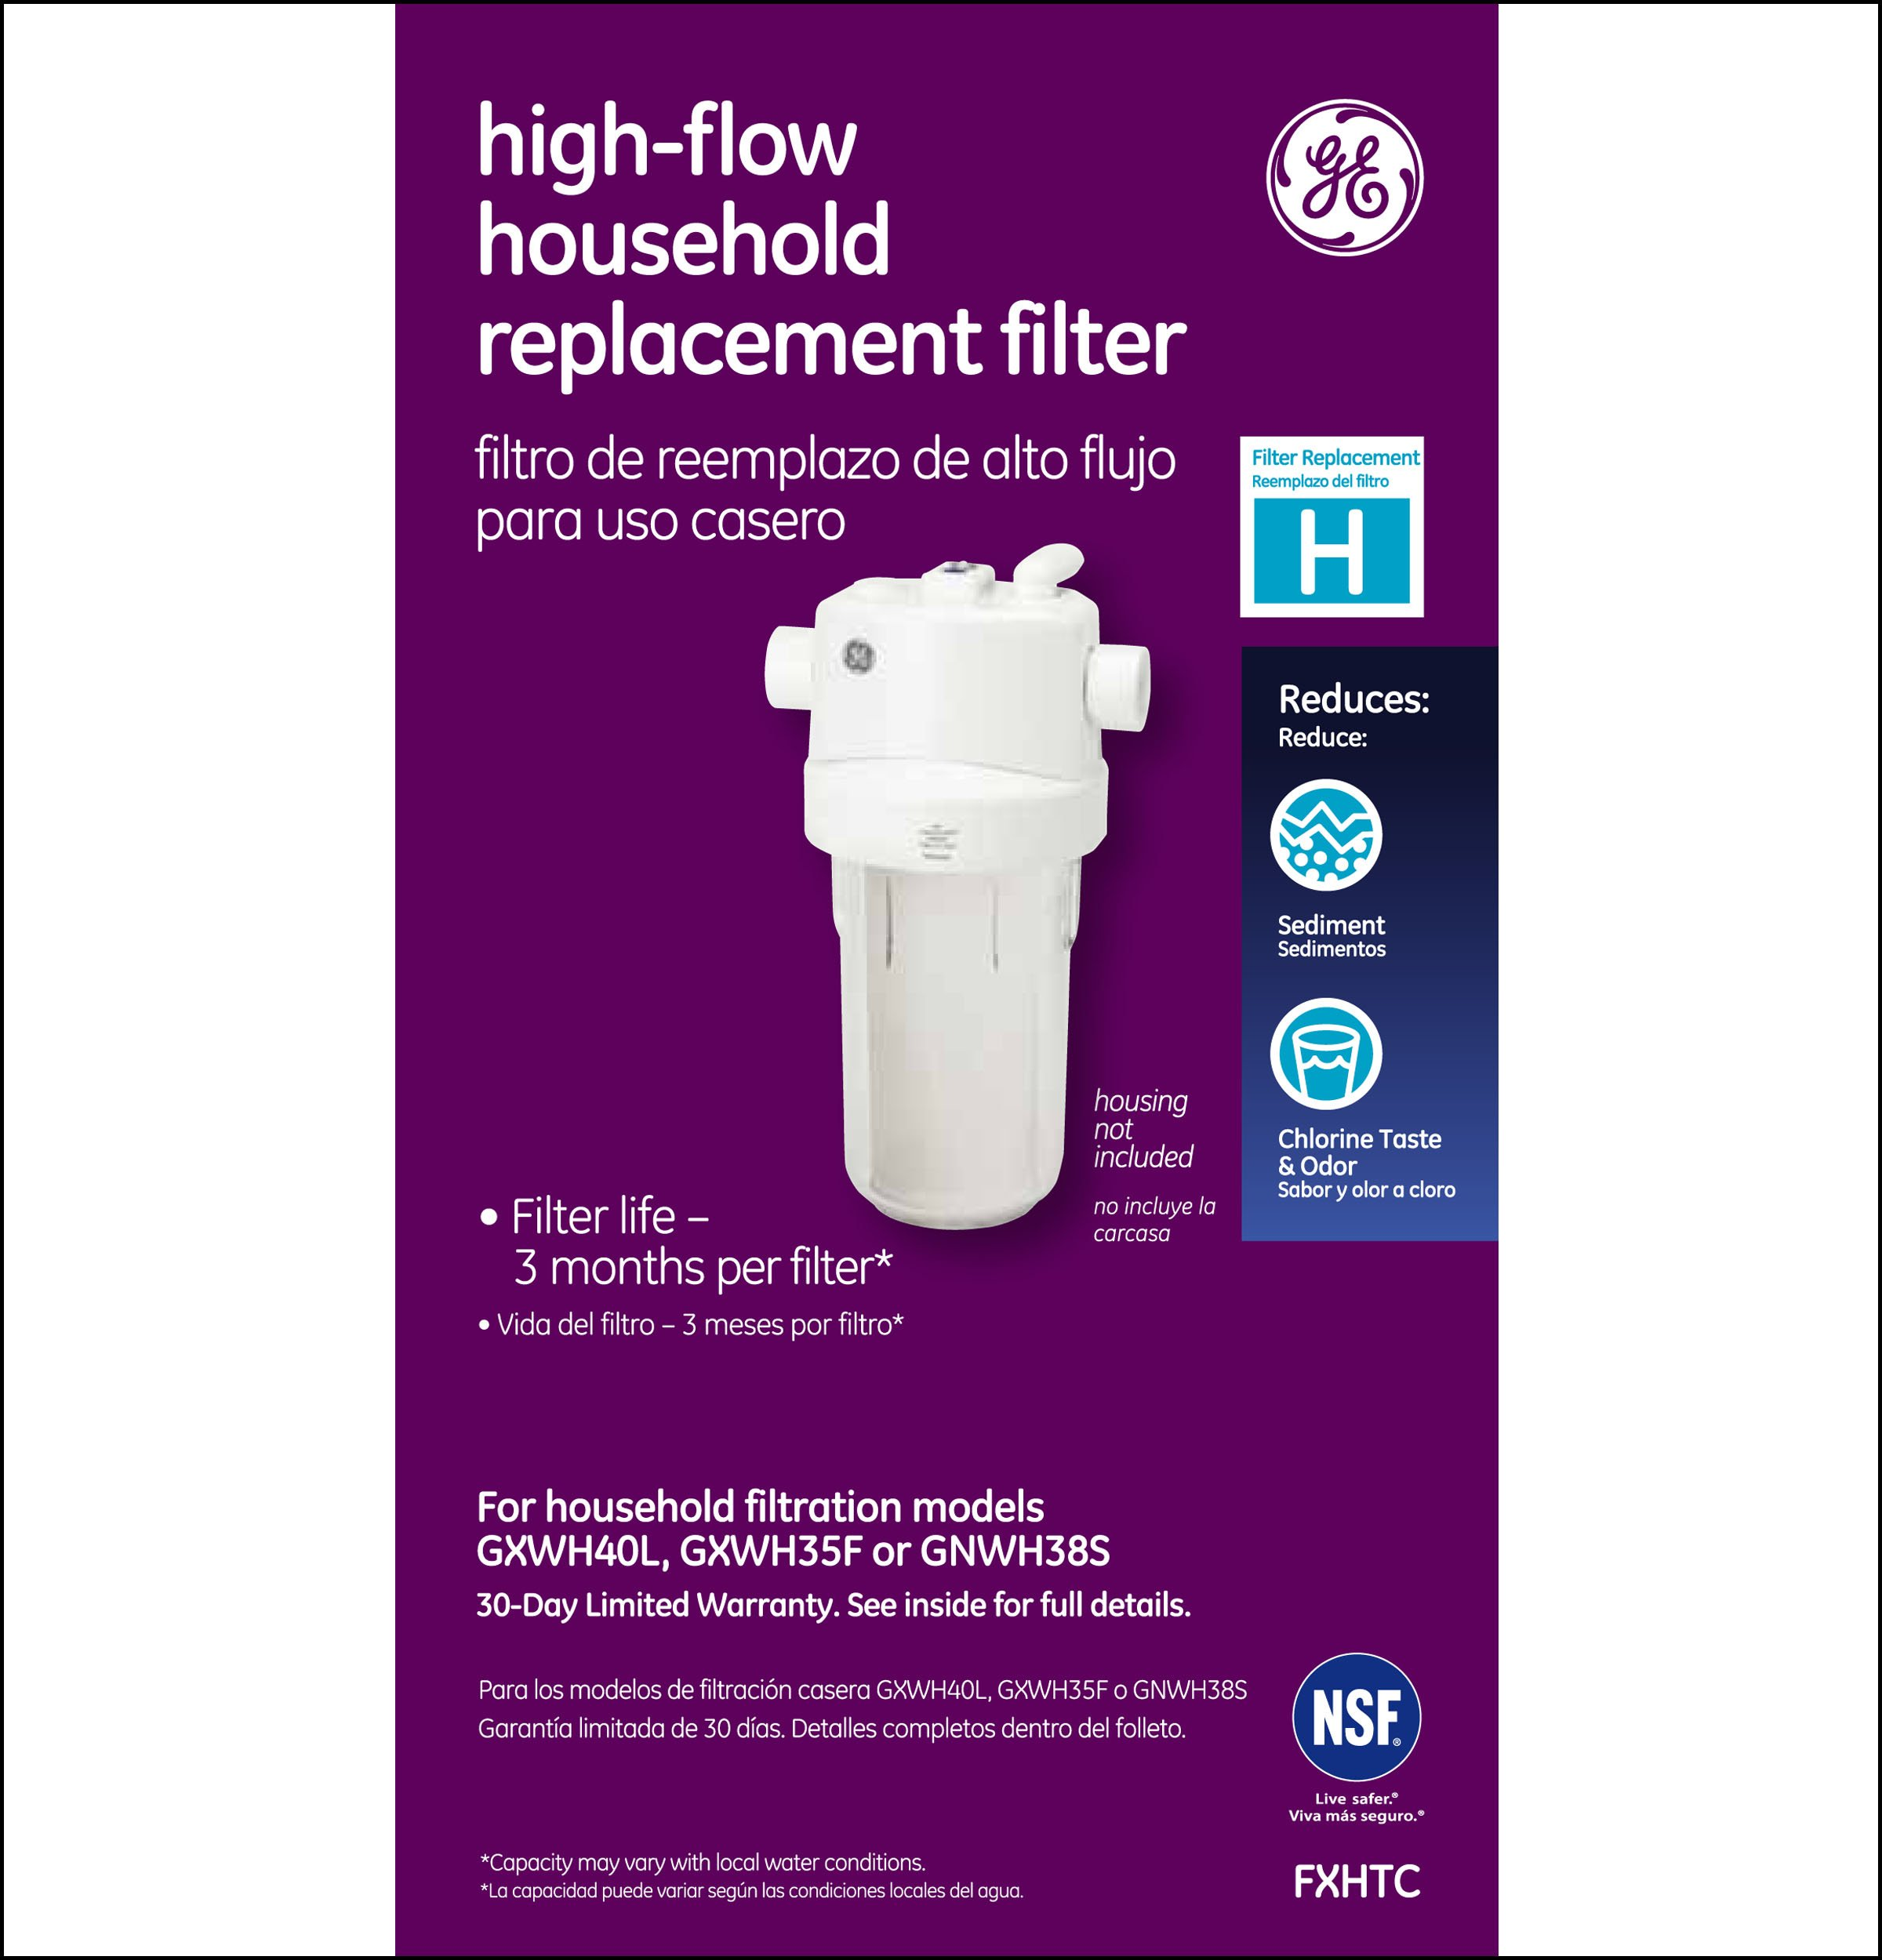 GE FXHTC Whole Home System Replacement Filter by GE (Image #1)